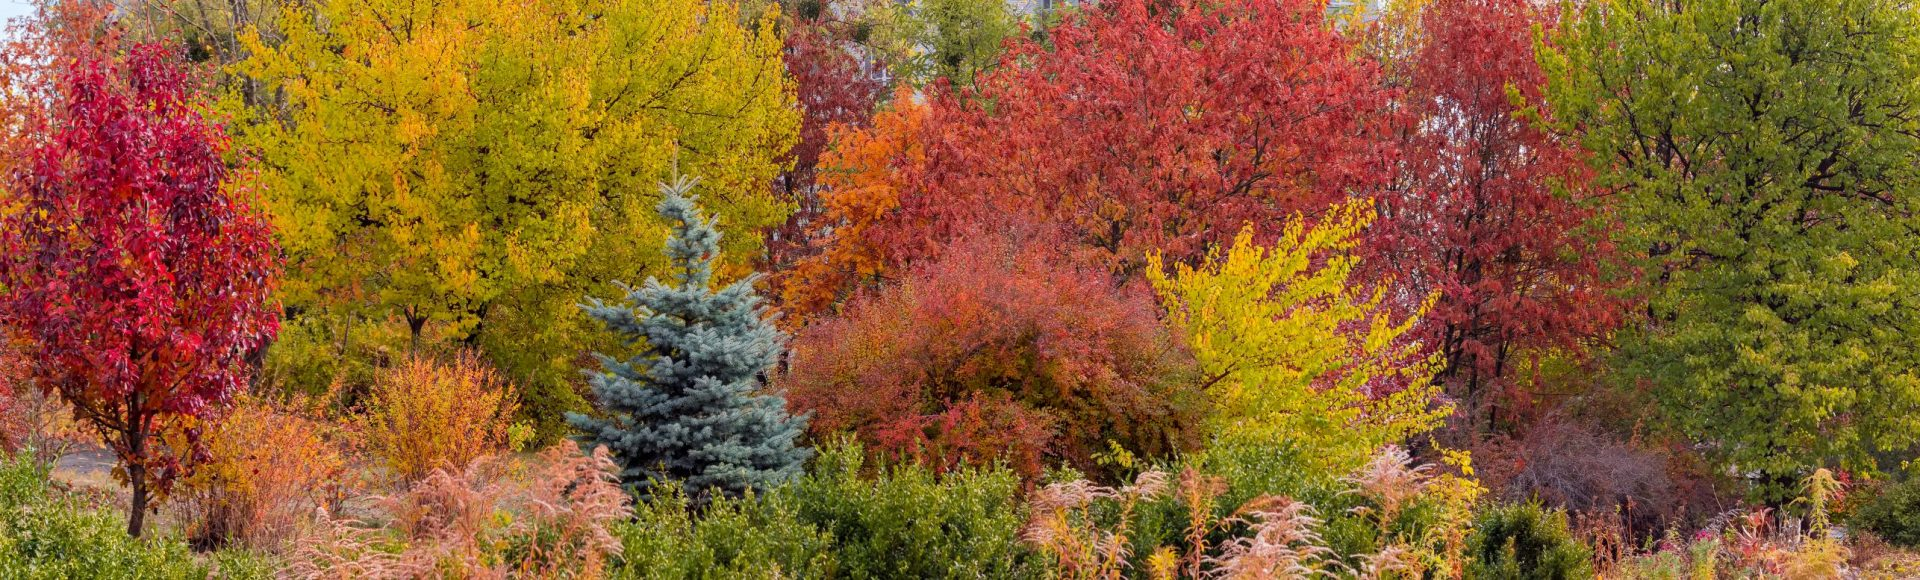 ONLINE: Beautify Your Yard with Ornamental Trees. ...